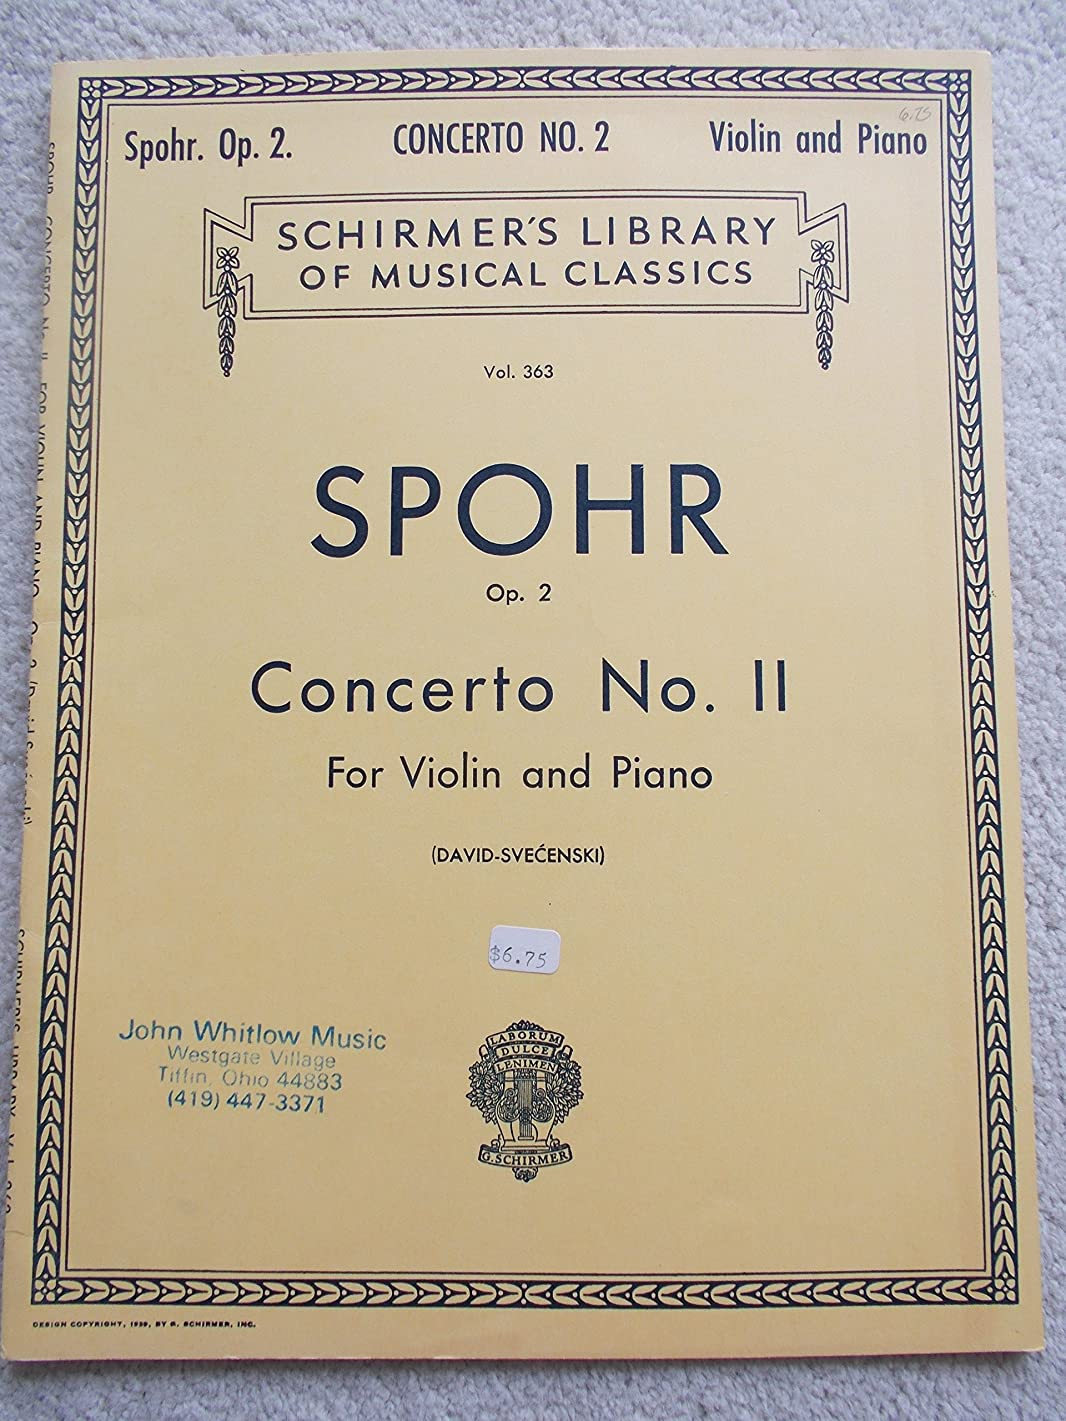 Spohr Concerto No. 2 for Violin and Piano (Op. 2) (Schirmer's Library of Musical Classics, Vol. 363)